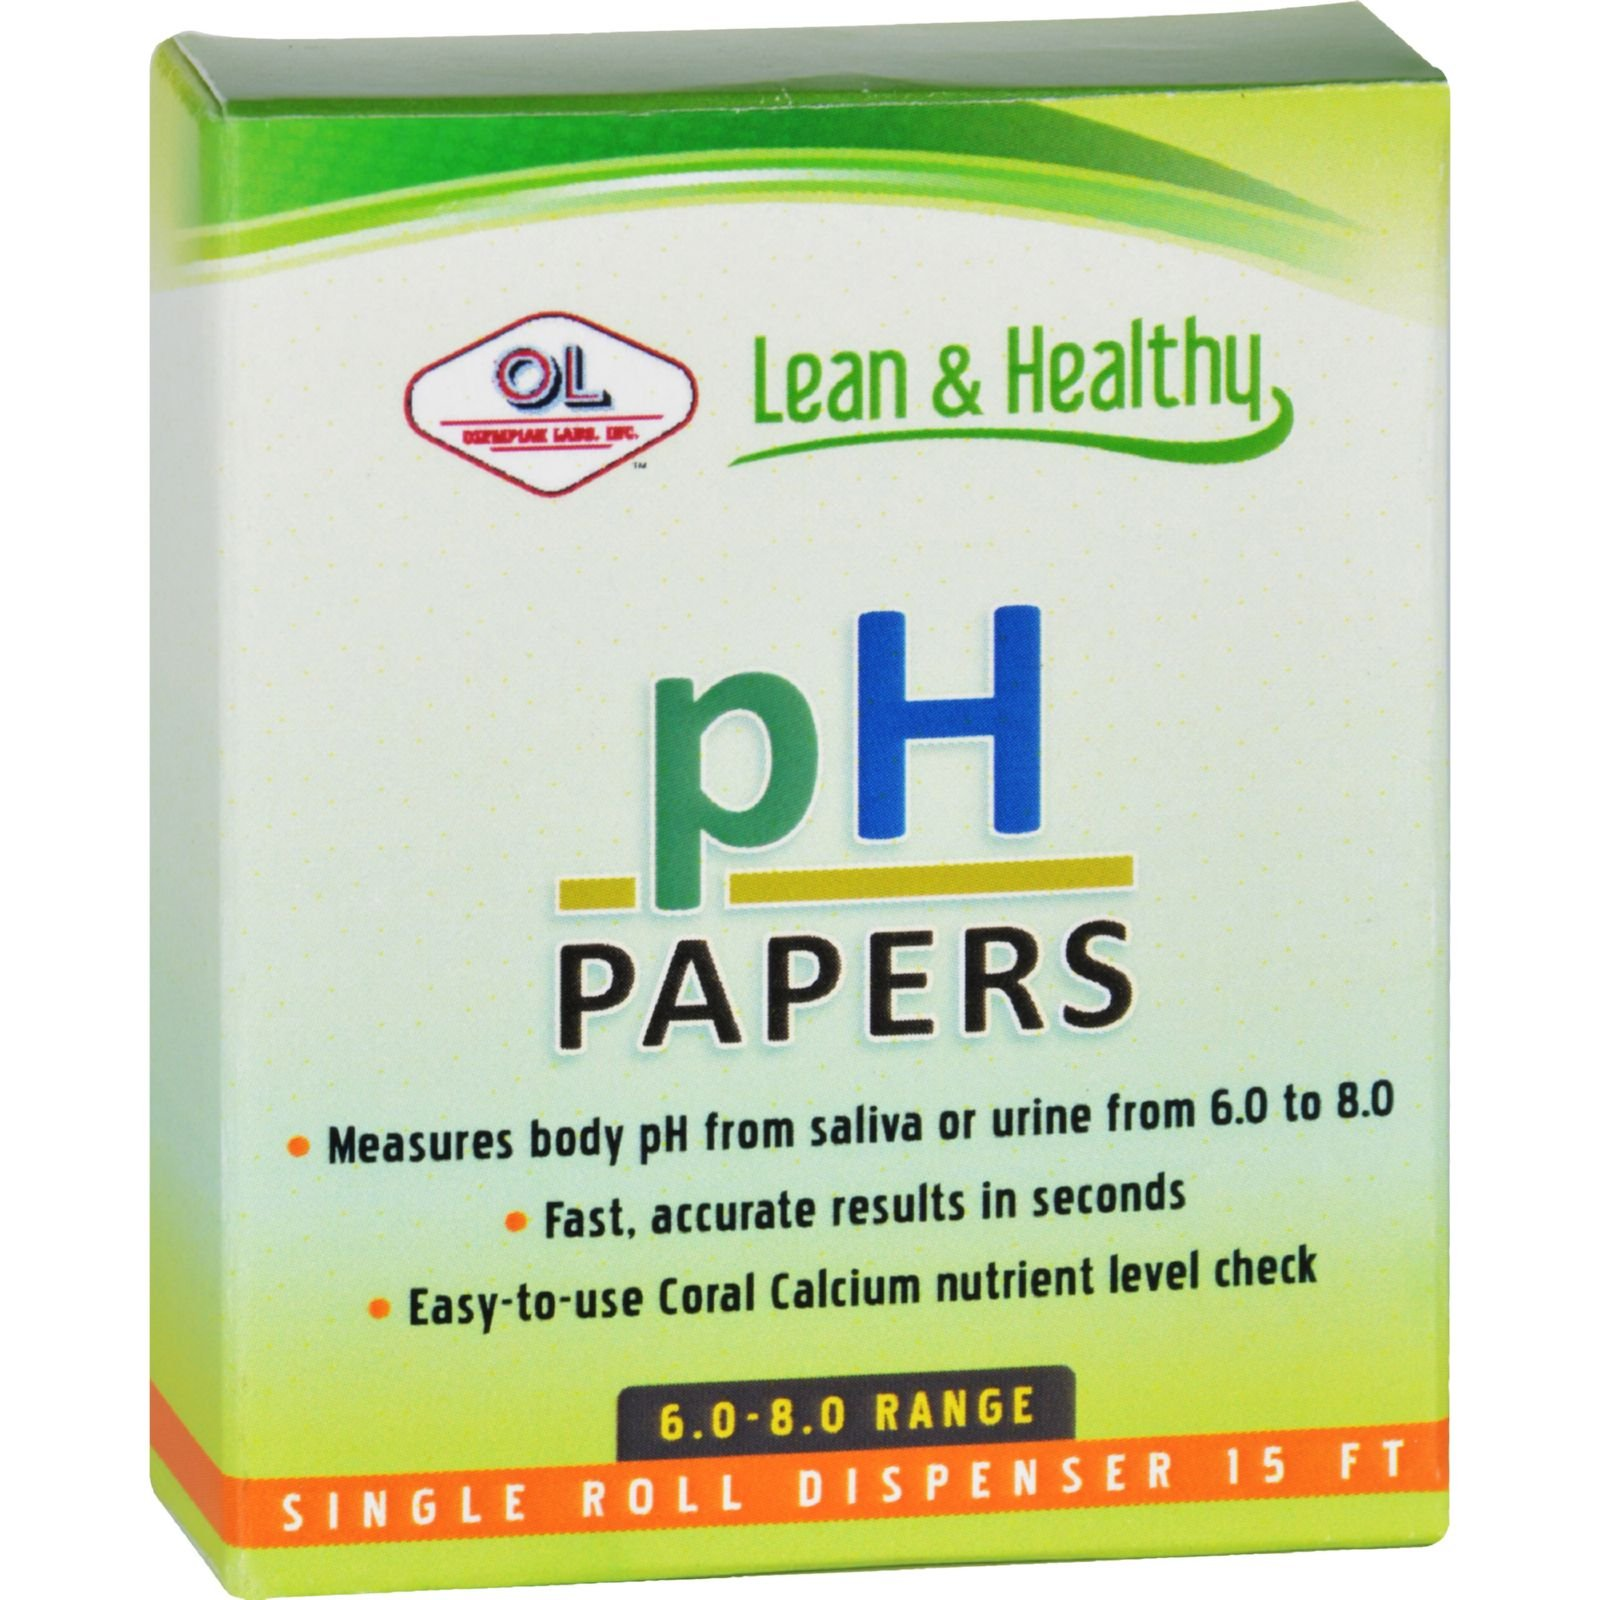 Olympian Labs pH Papers - 6.0-8.0 Range - 15 ft by Olympian Labs